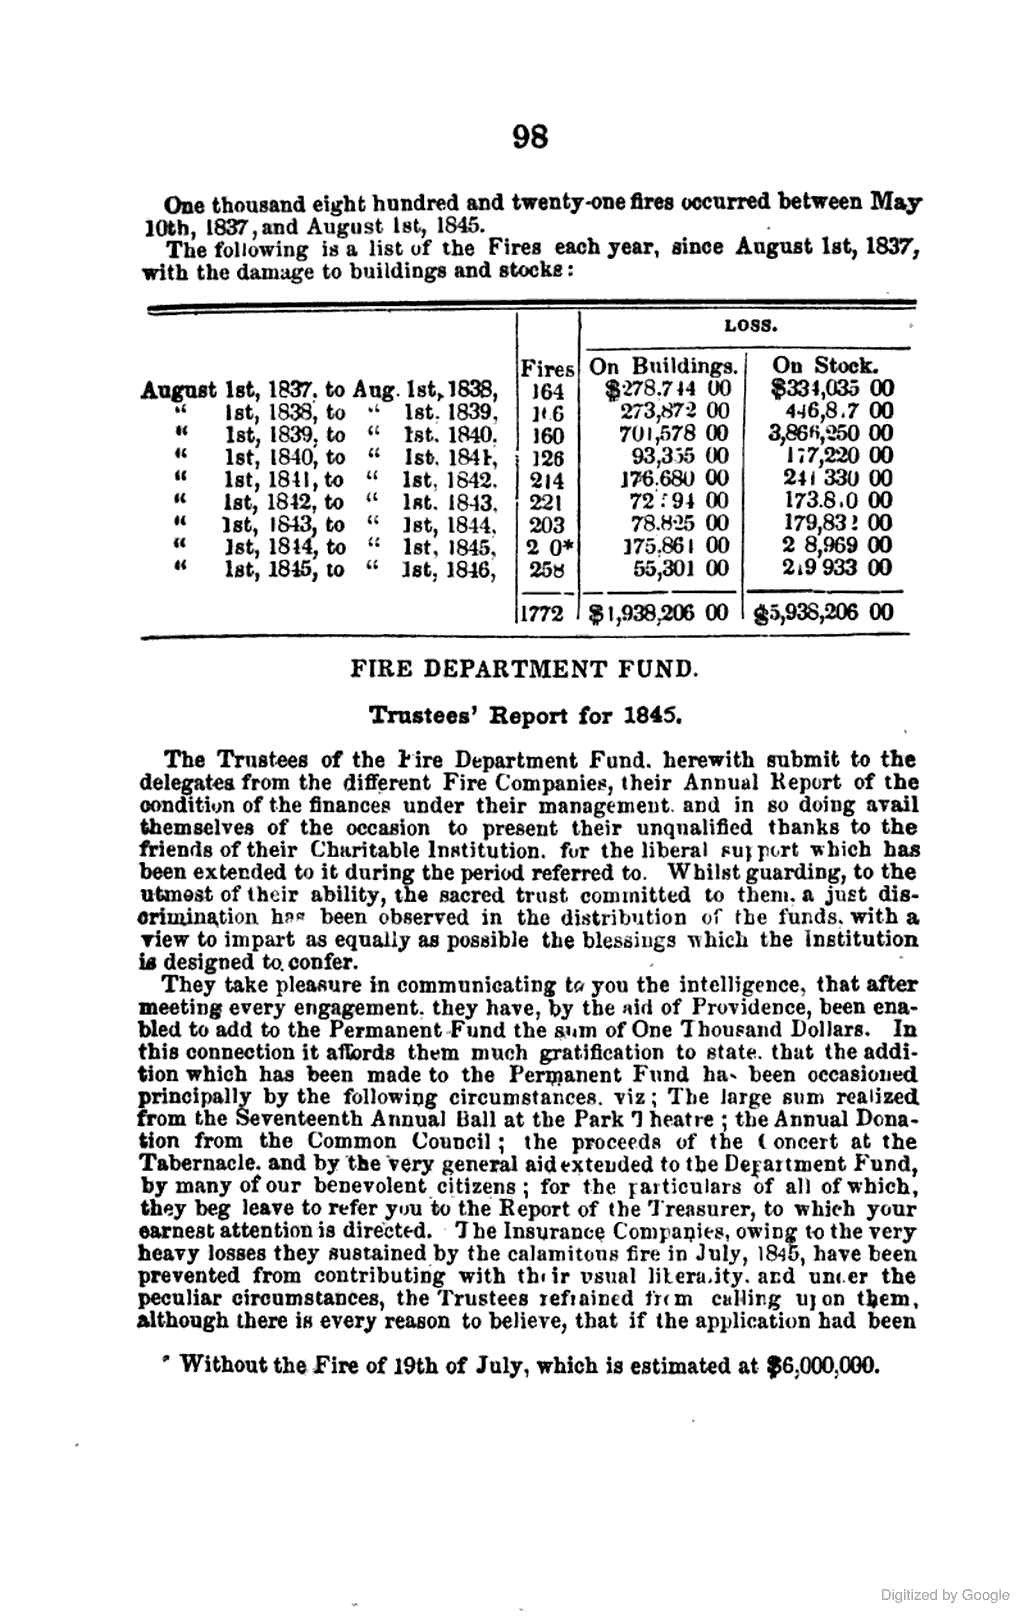 [1845]: FIRE DEPARTMENT FUND. TRUSTEES' REPORT FOR 1845